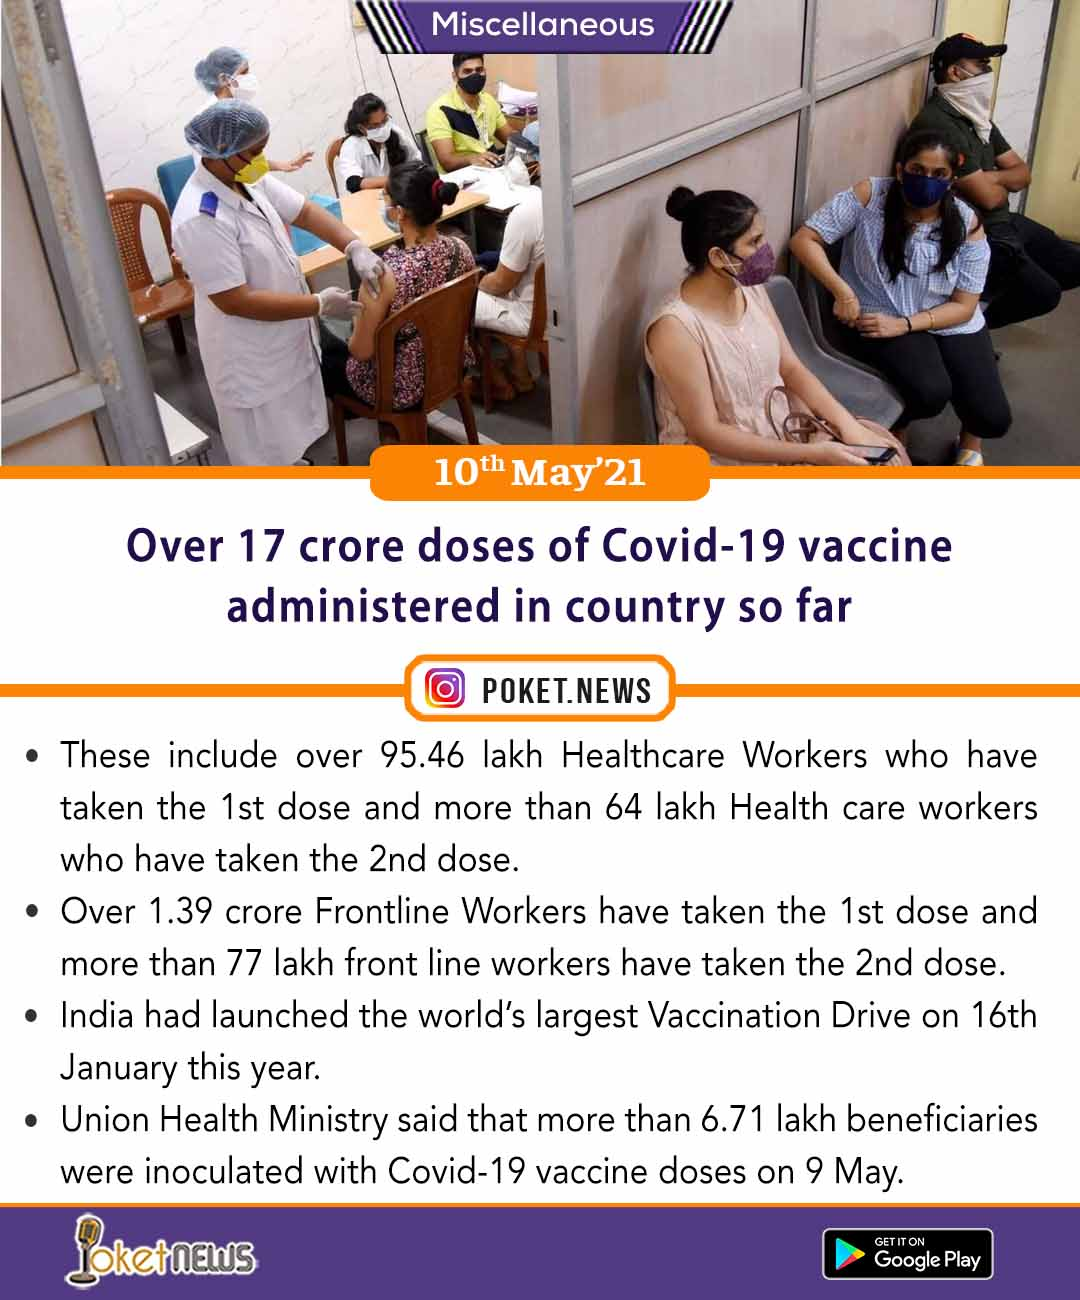 Over 17 crore doses of Covid-19 vaccine administered in country so far